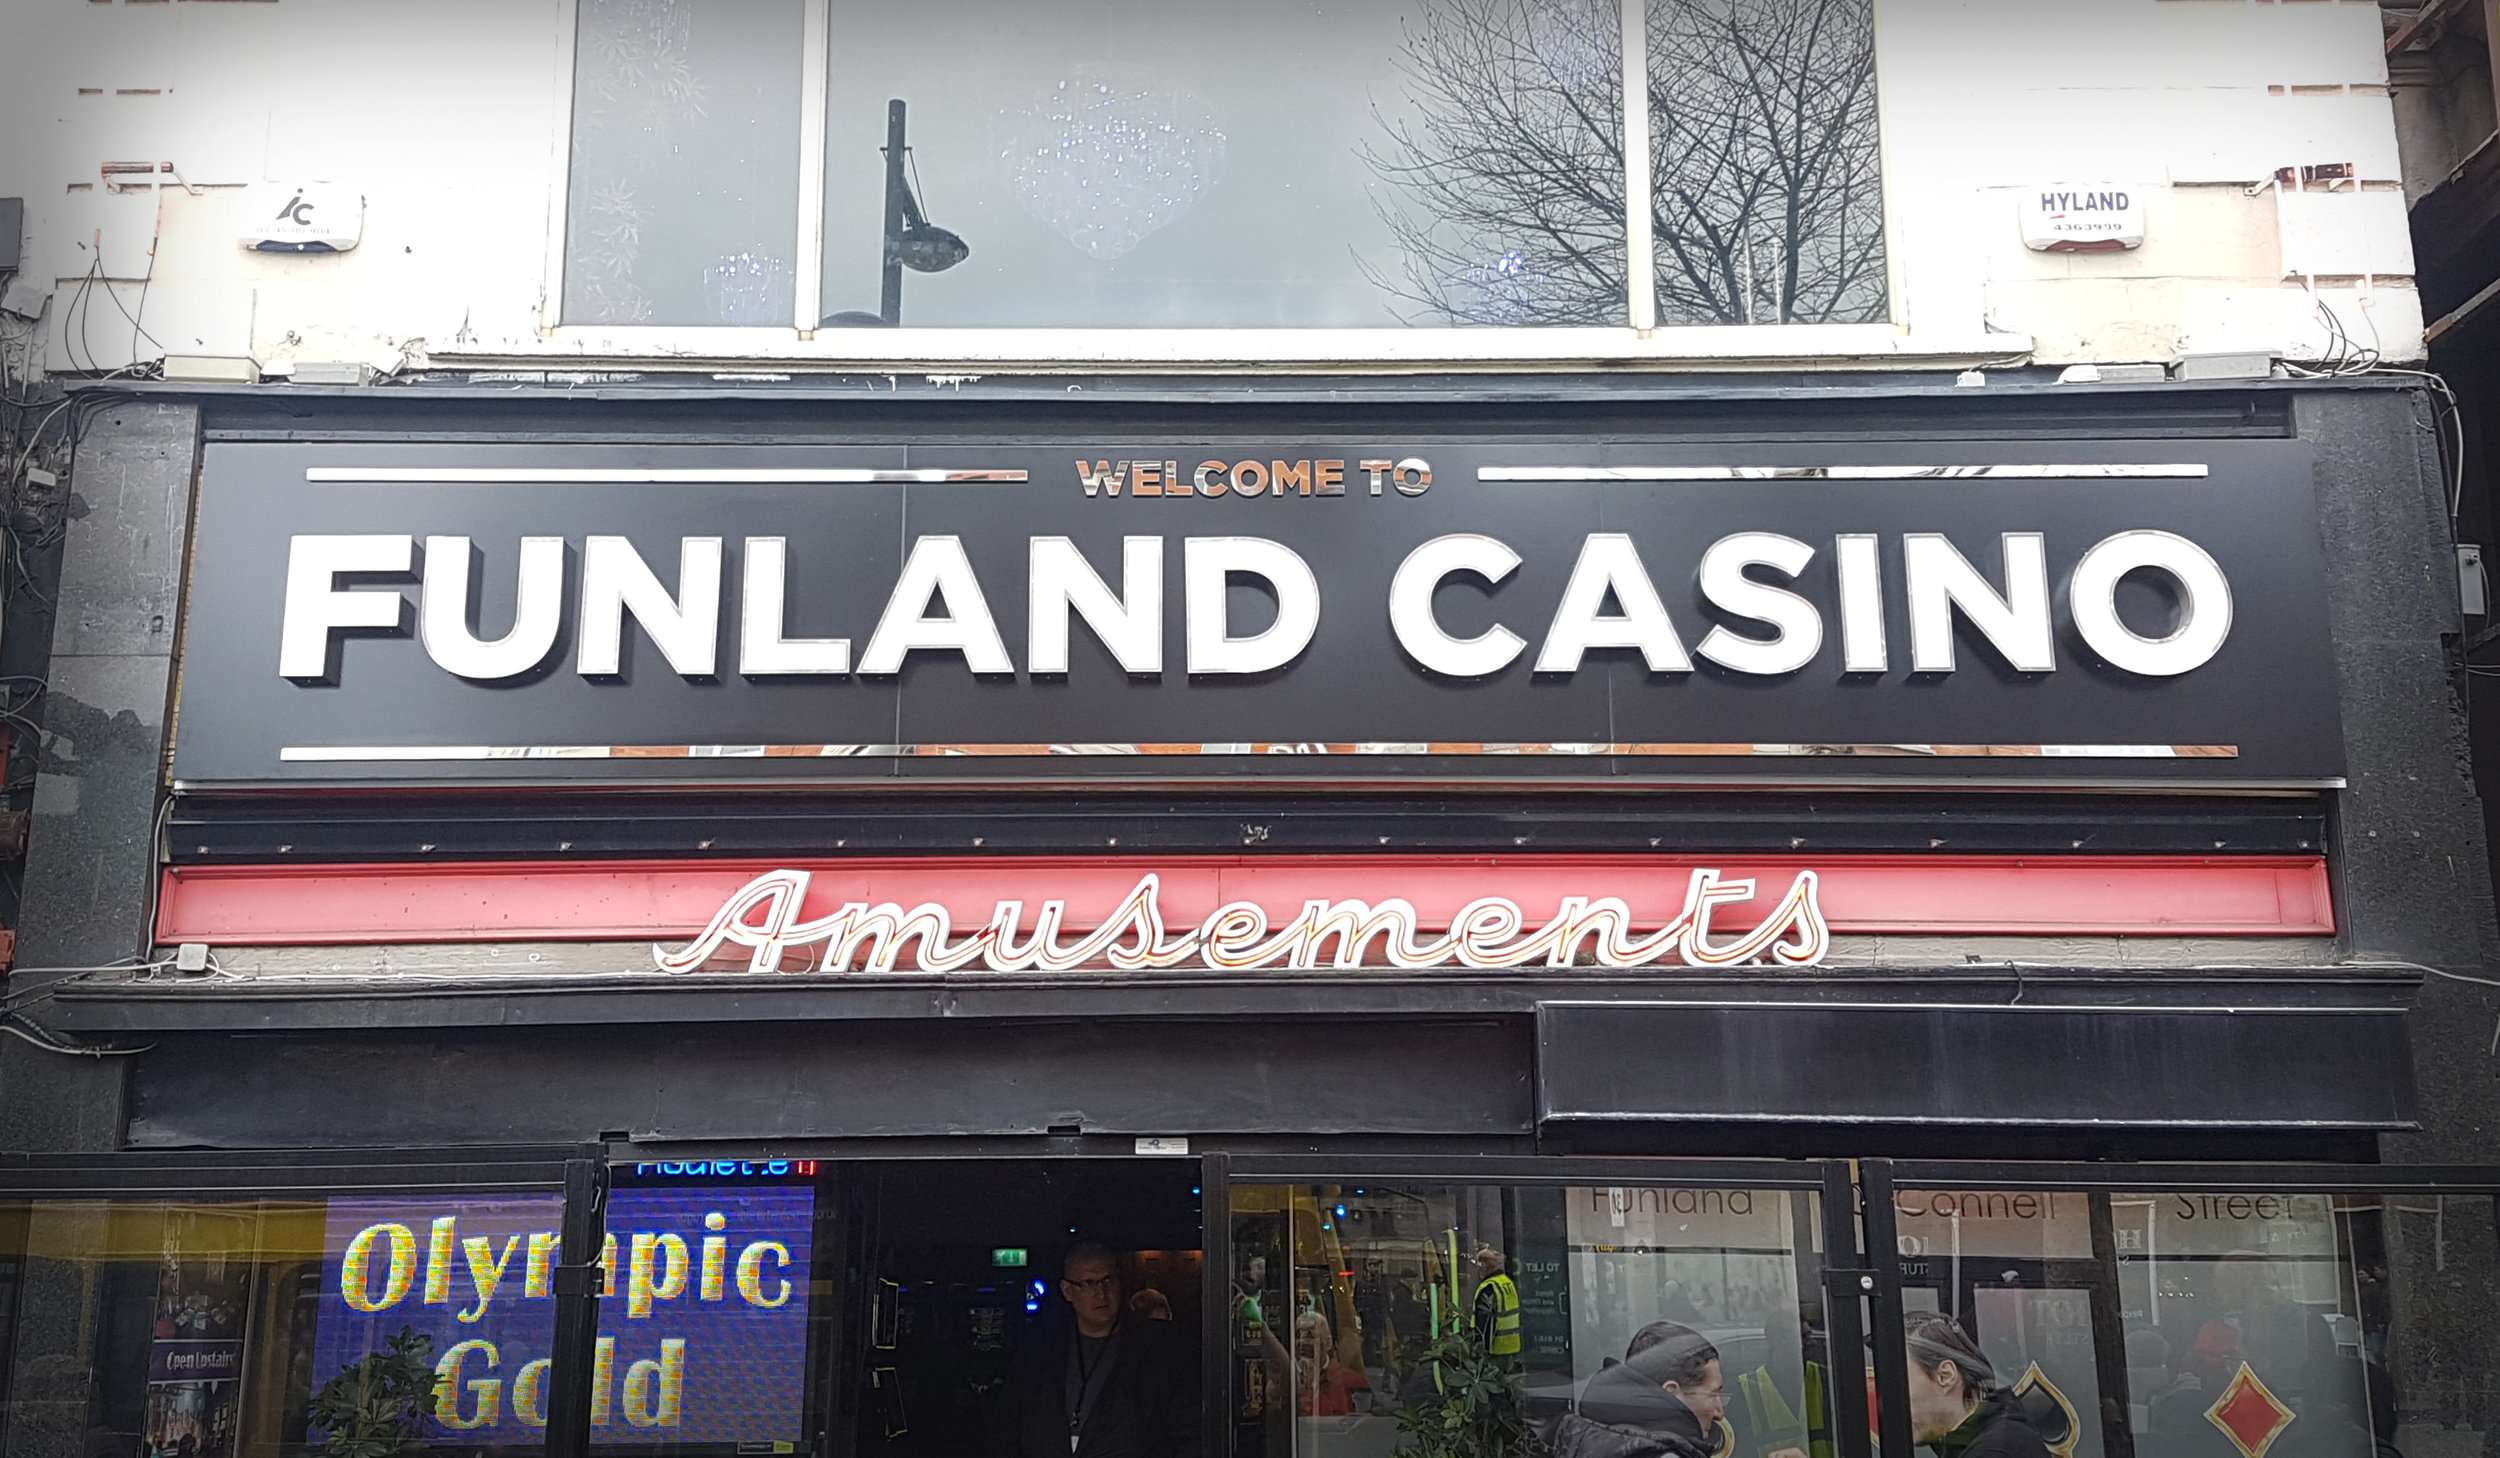 funland casino copy.jpg